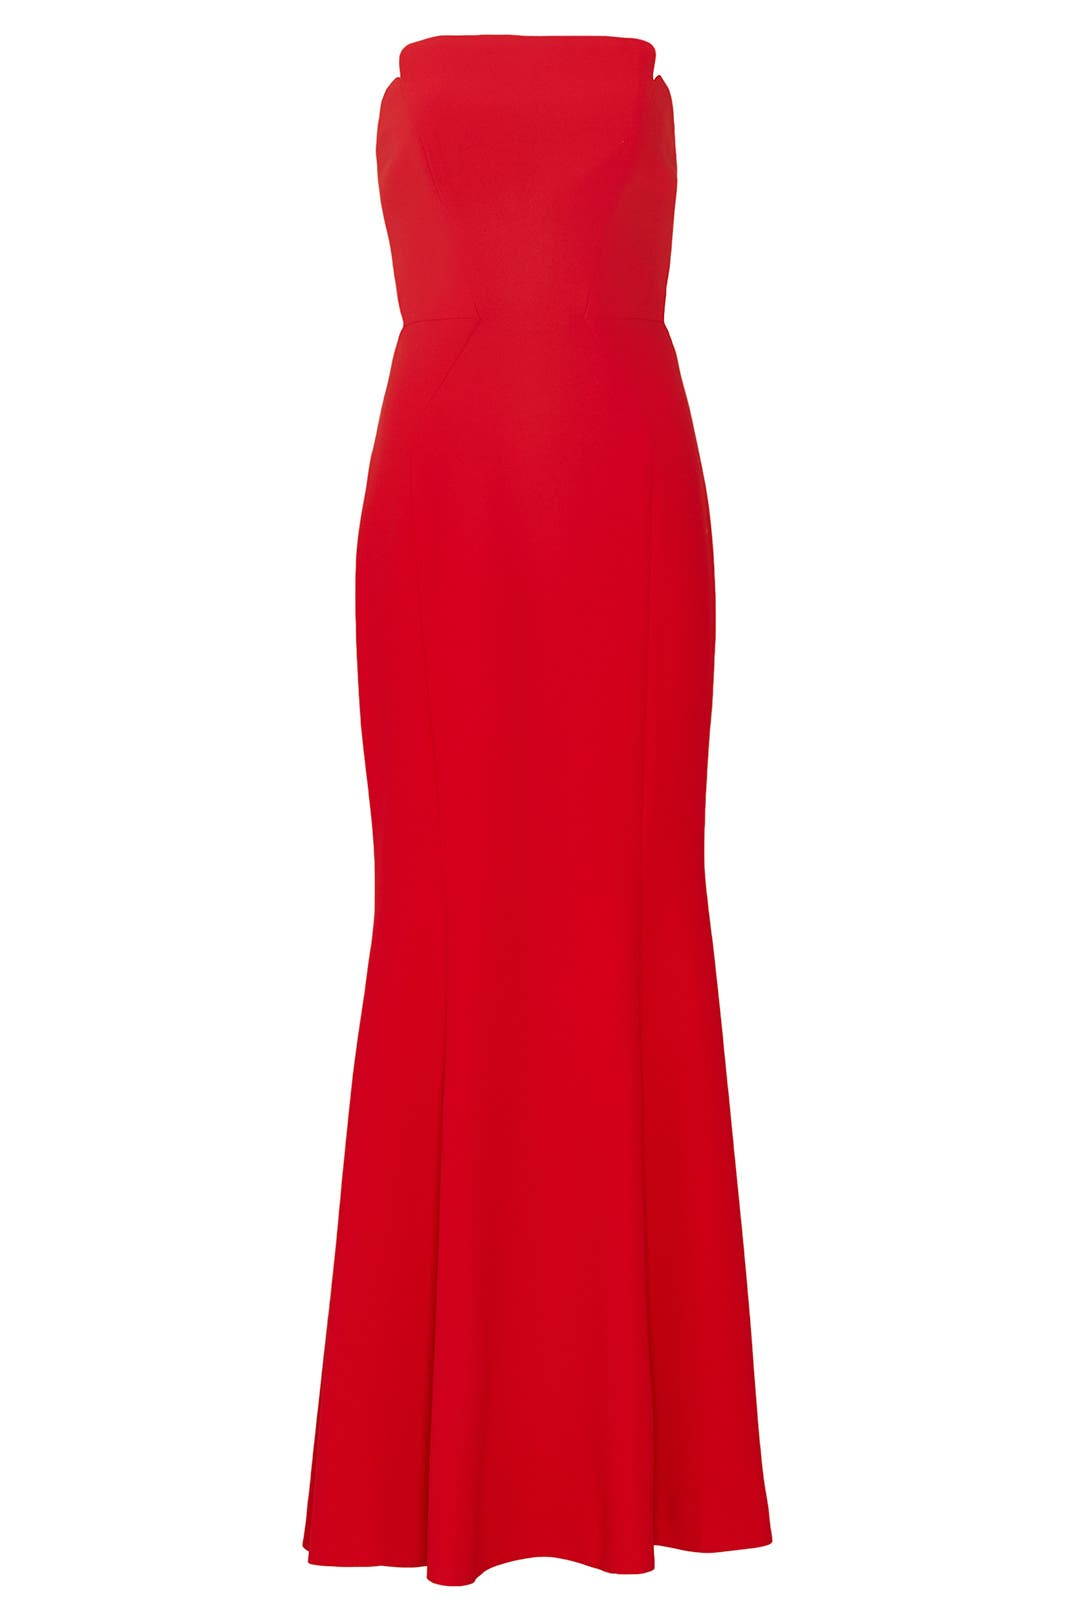 Red Academy Gown by Jill Jill Stuart for $86 | Rent the Runway